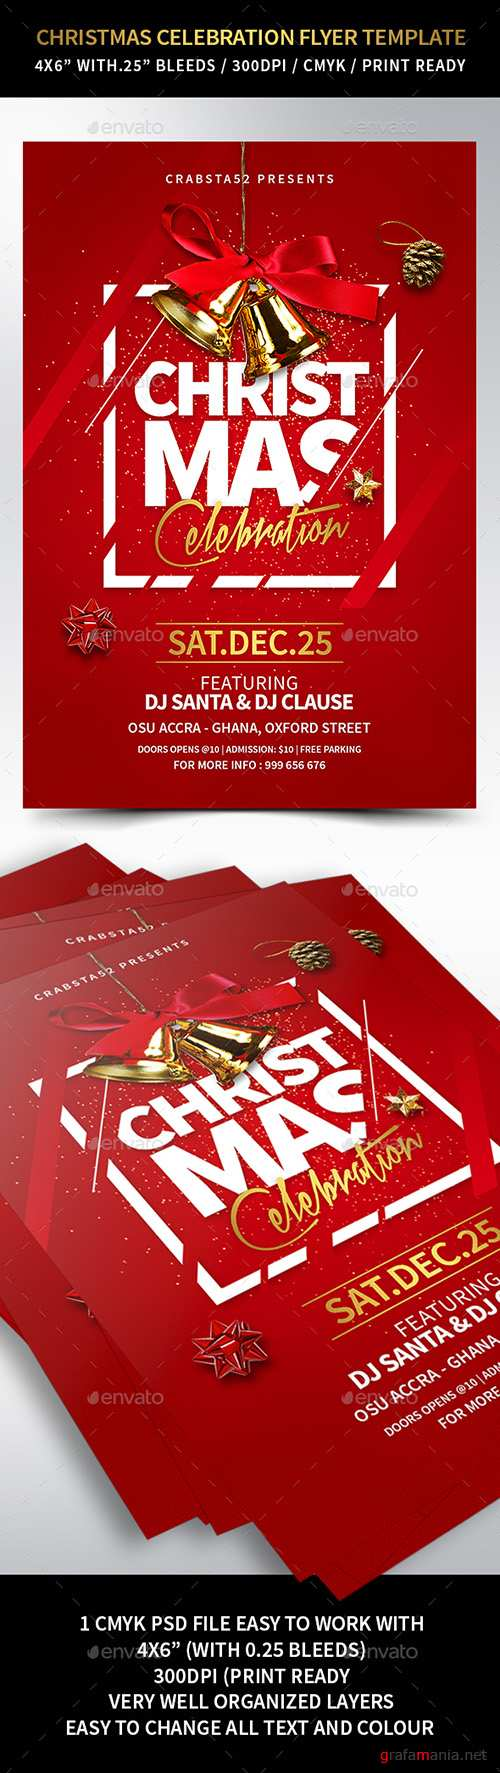 GR - Christmas Celebration Flyer Template 22931714